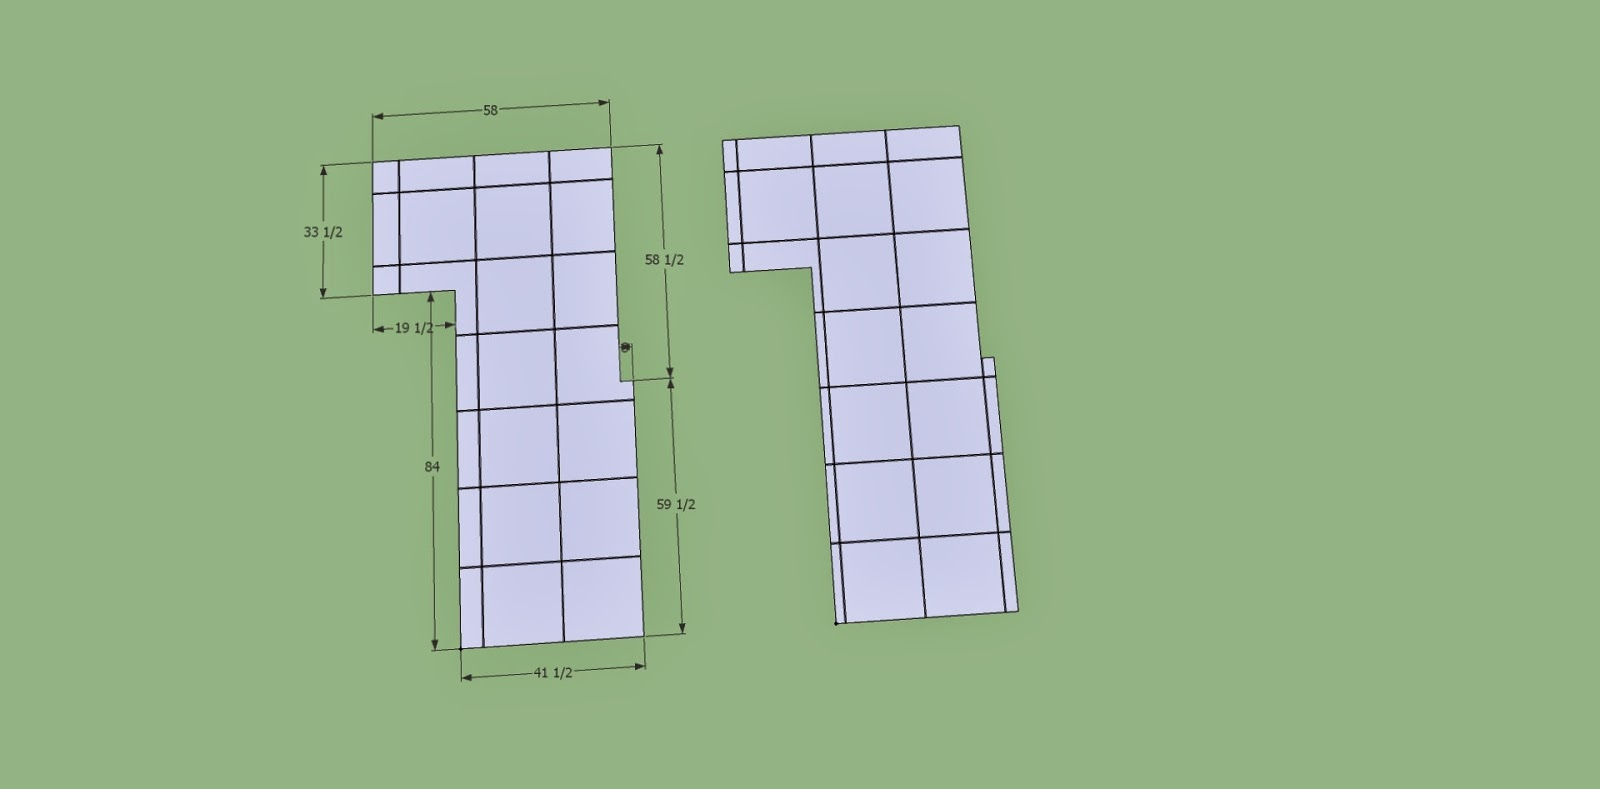 how to cut through a row of materials in sketchup